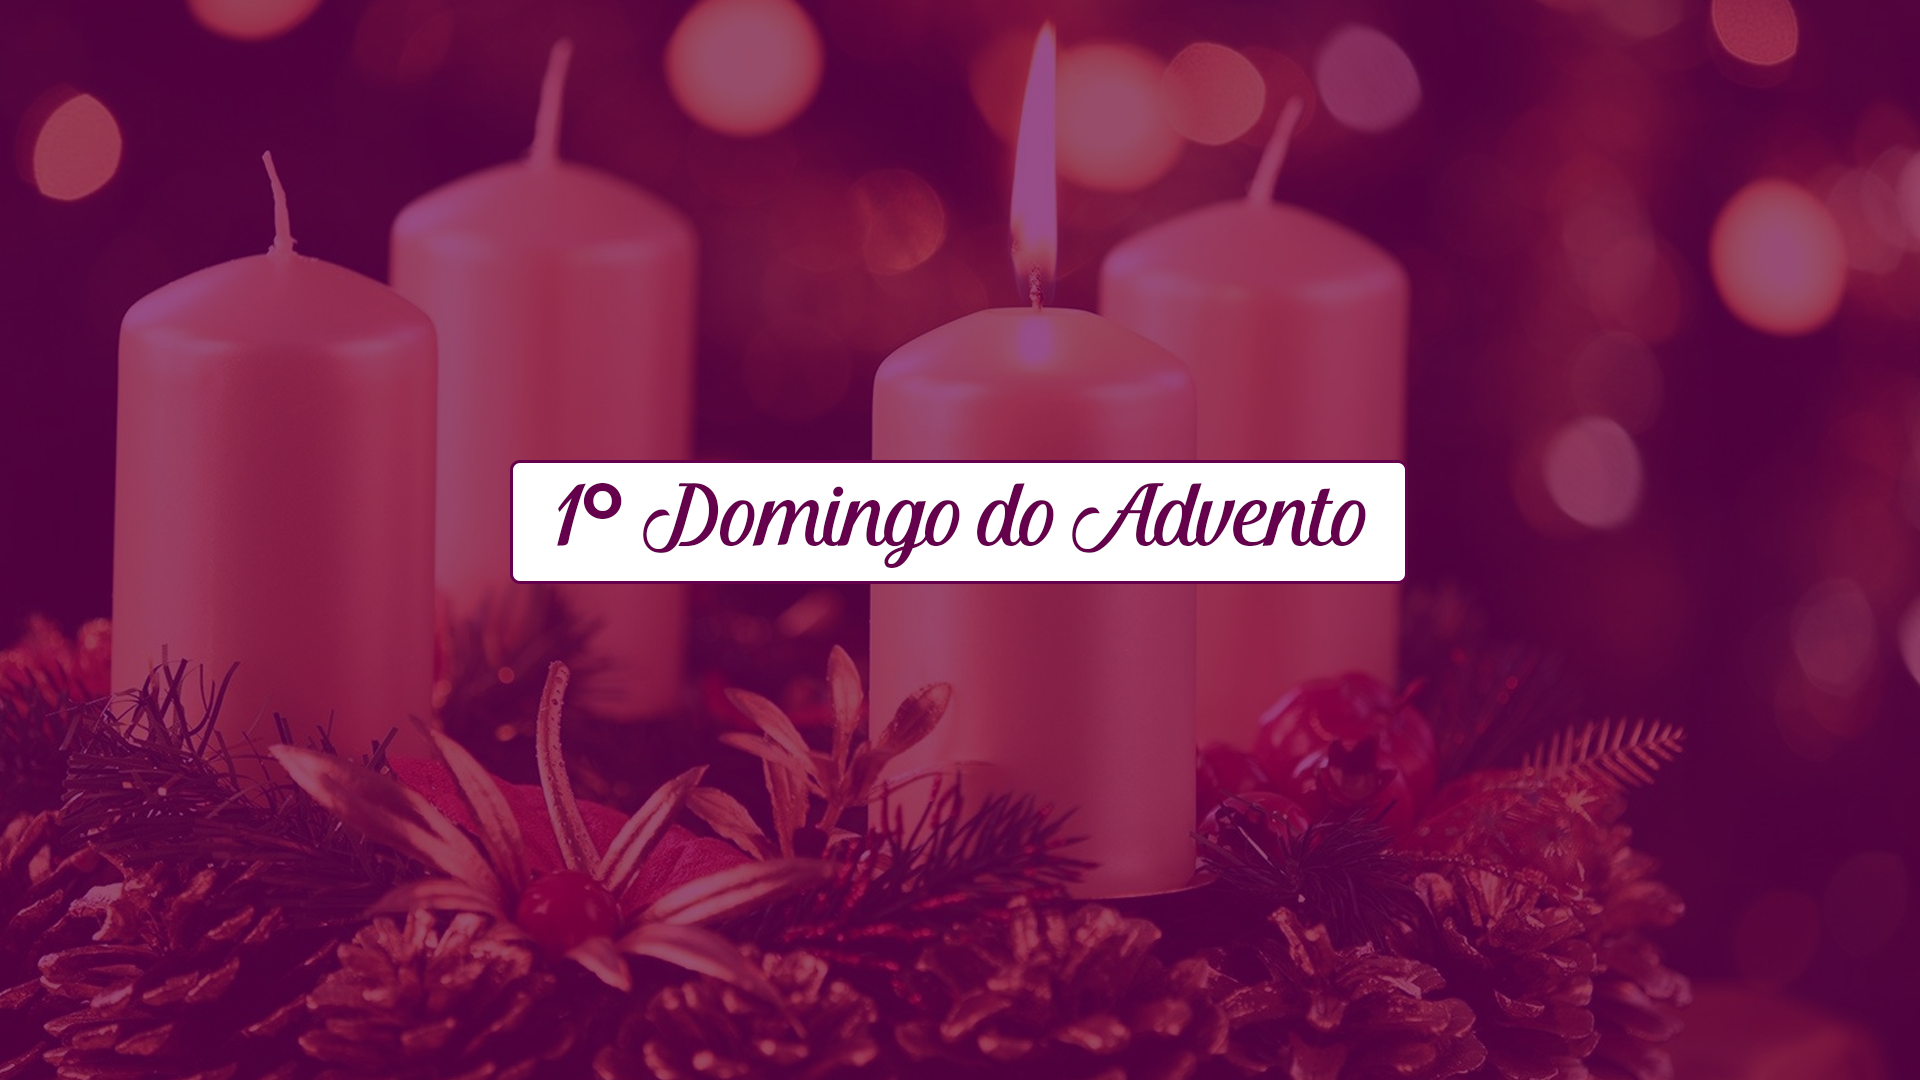 1º Domingo do Advento: Tempo de vigilância e de espera